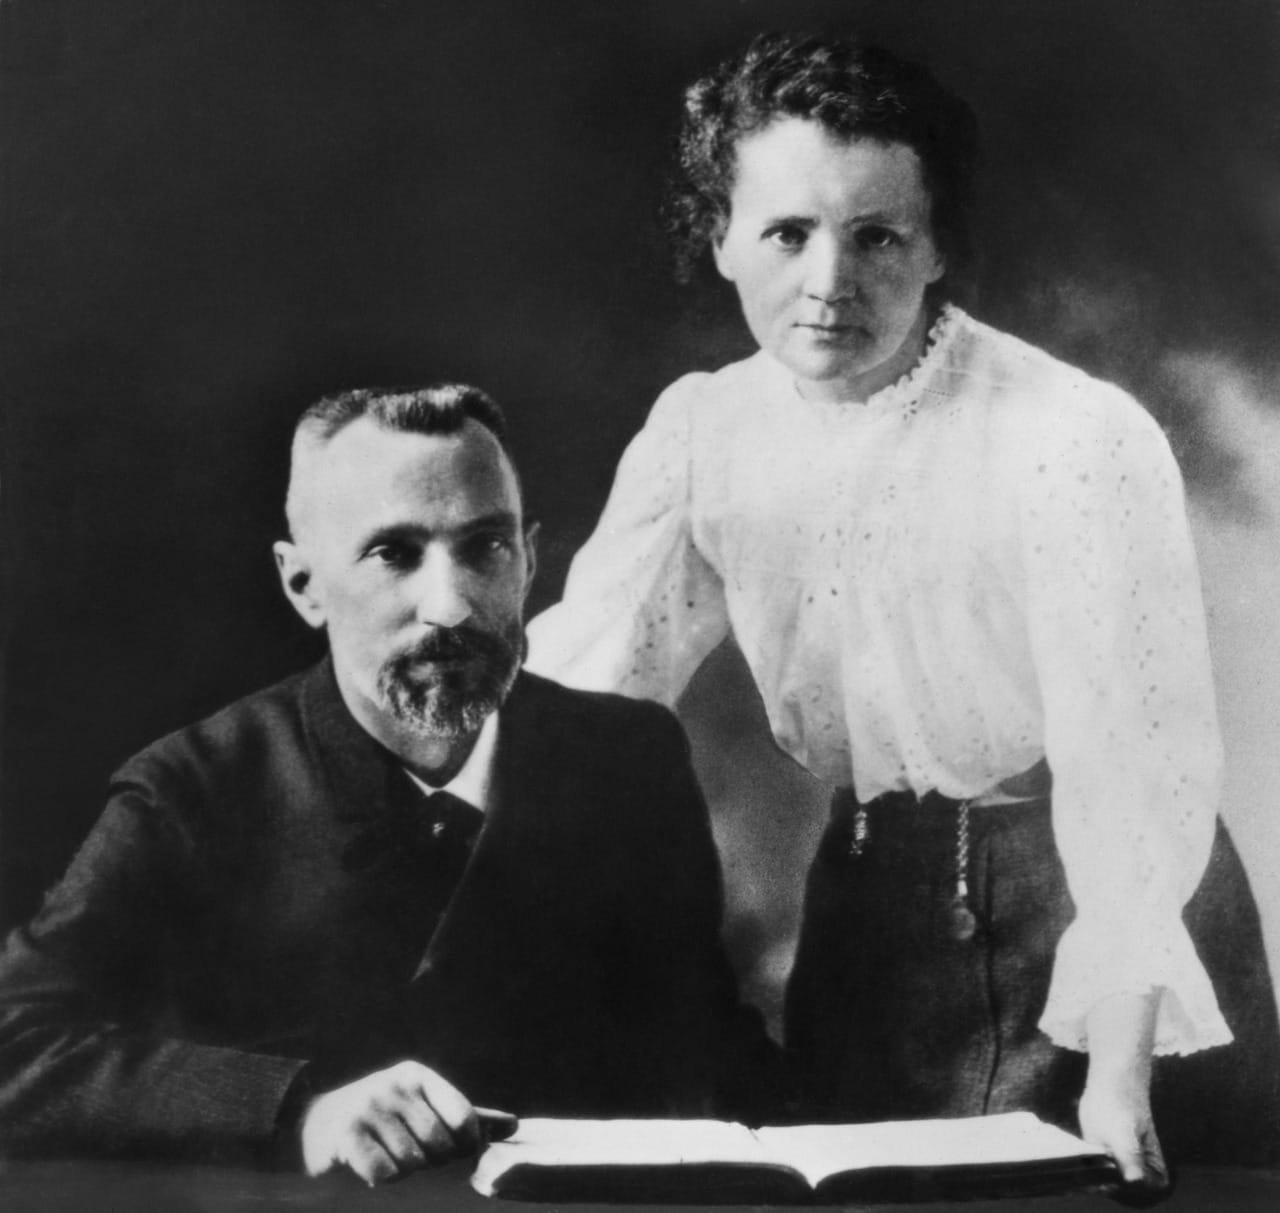 Marie Sklodowska and her future husband Pierre Curie